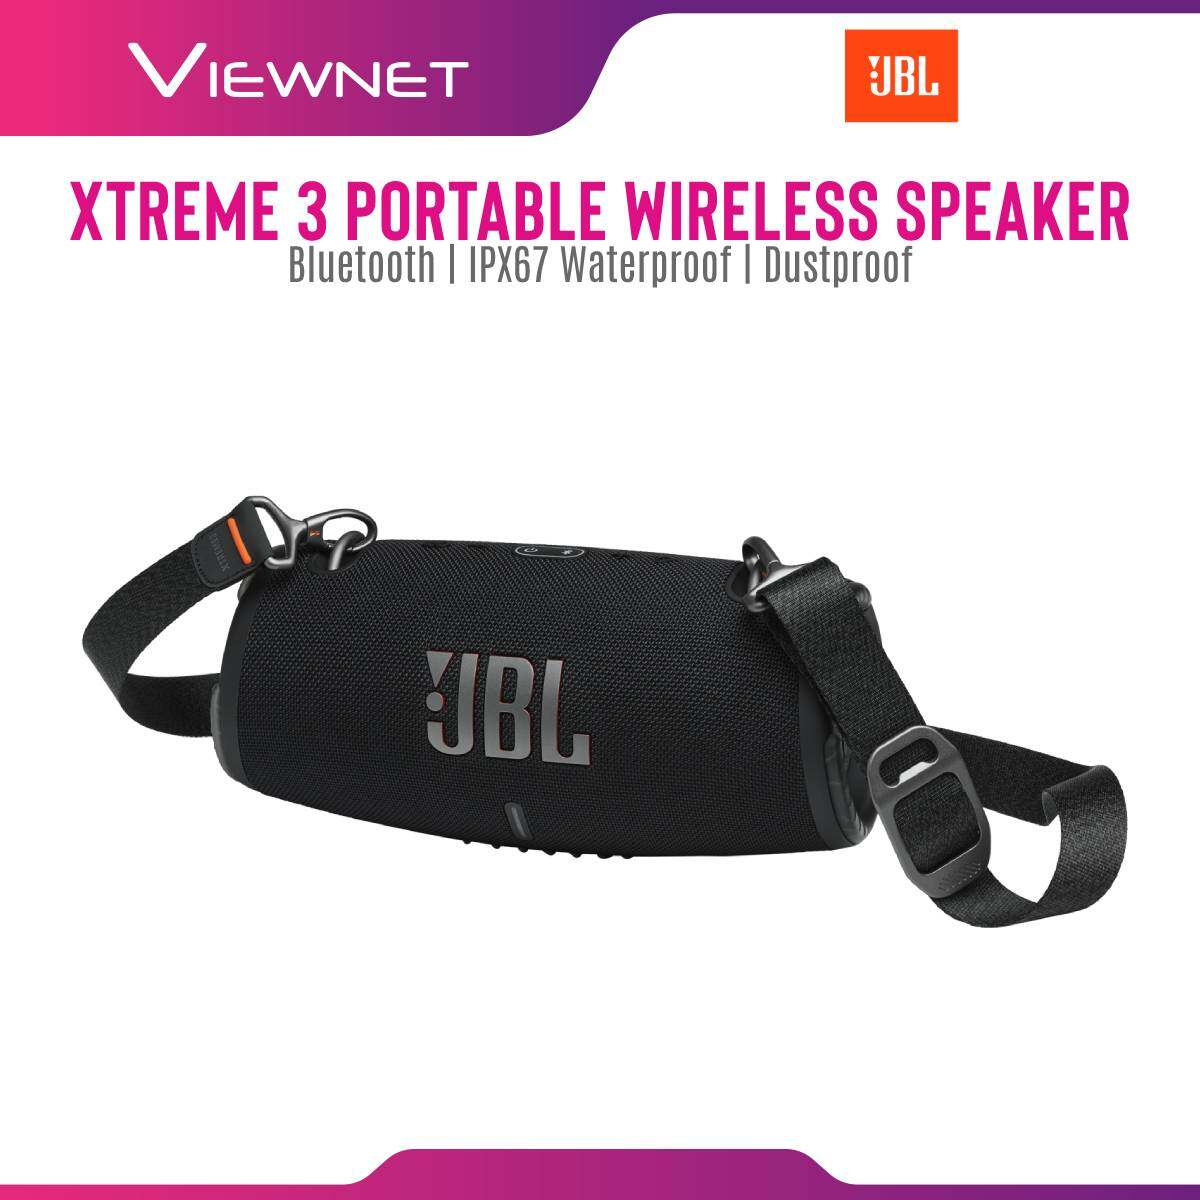 JBL Xtreme 3 Wireless Portable Speaker with IPX67 Waterproof and Dustproof , 15 Hours Playtime